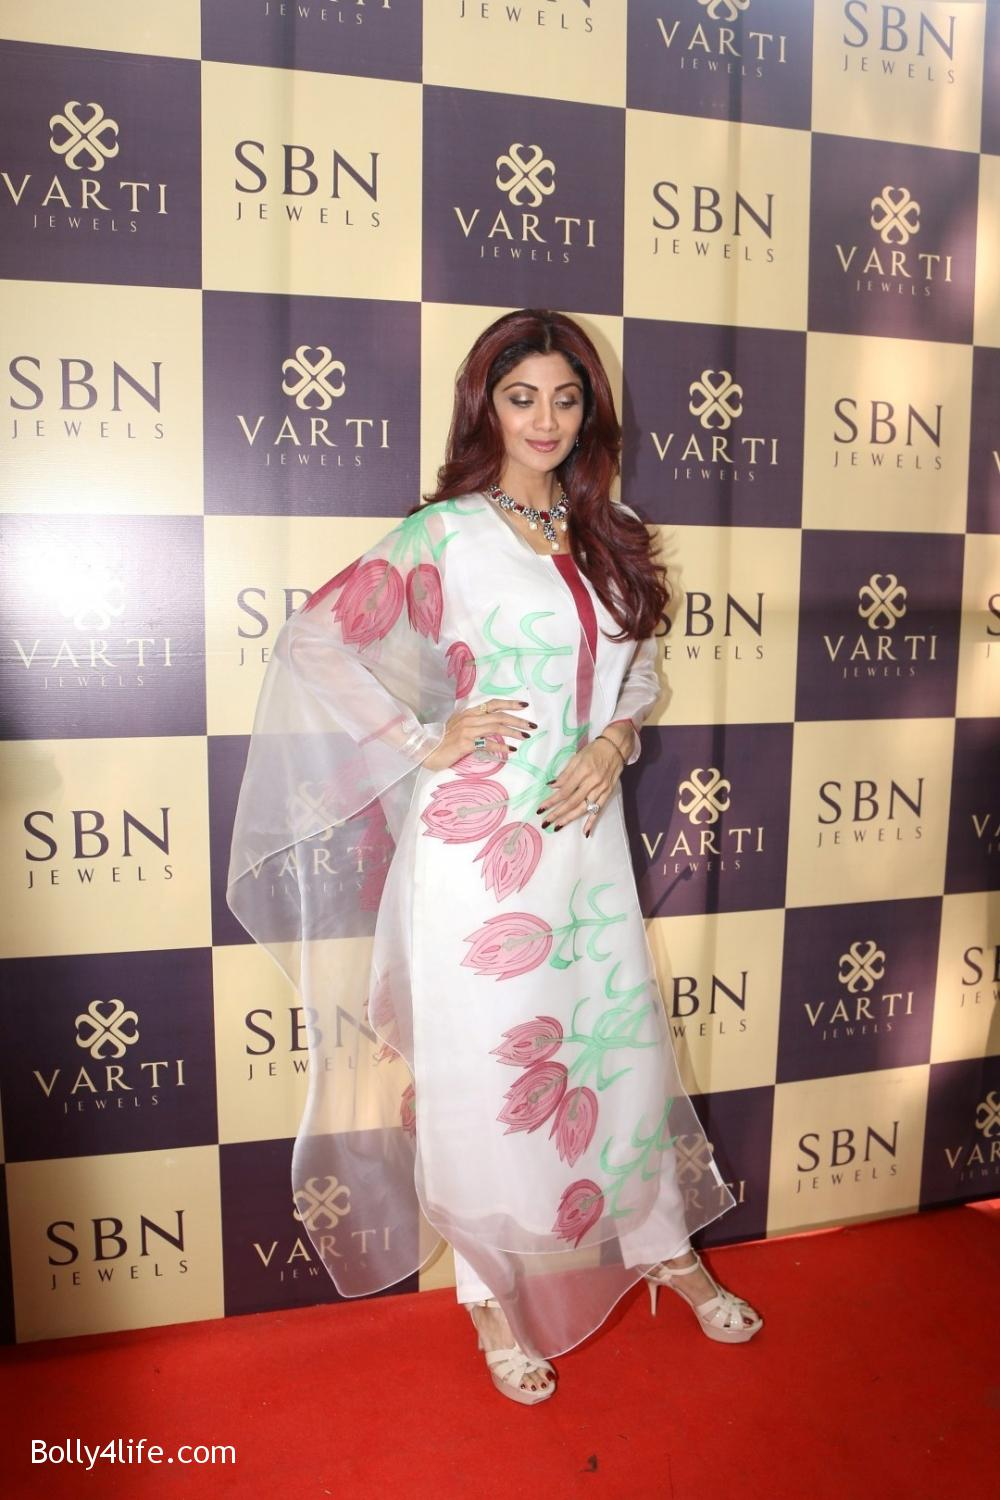 Shilpa-Shetty-inaugurates-jewellery-showroom-of-Varti-Jewells-5.jpg